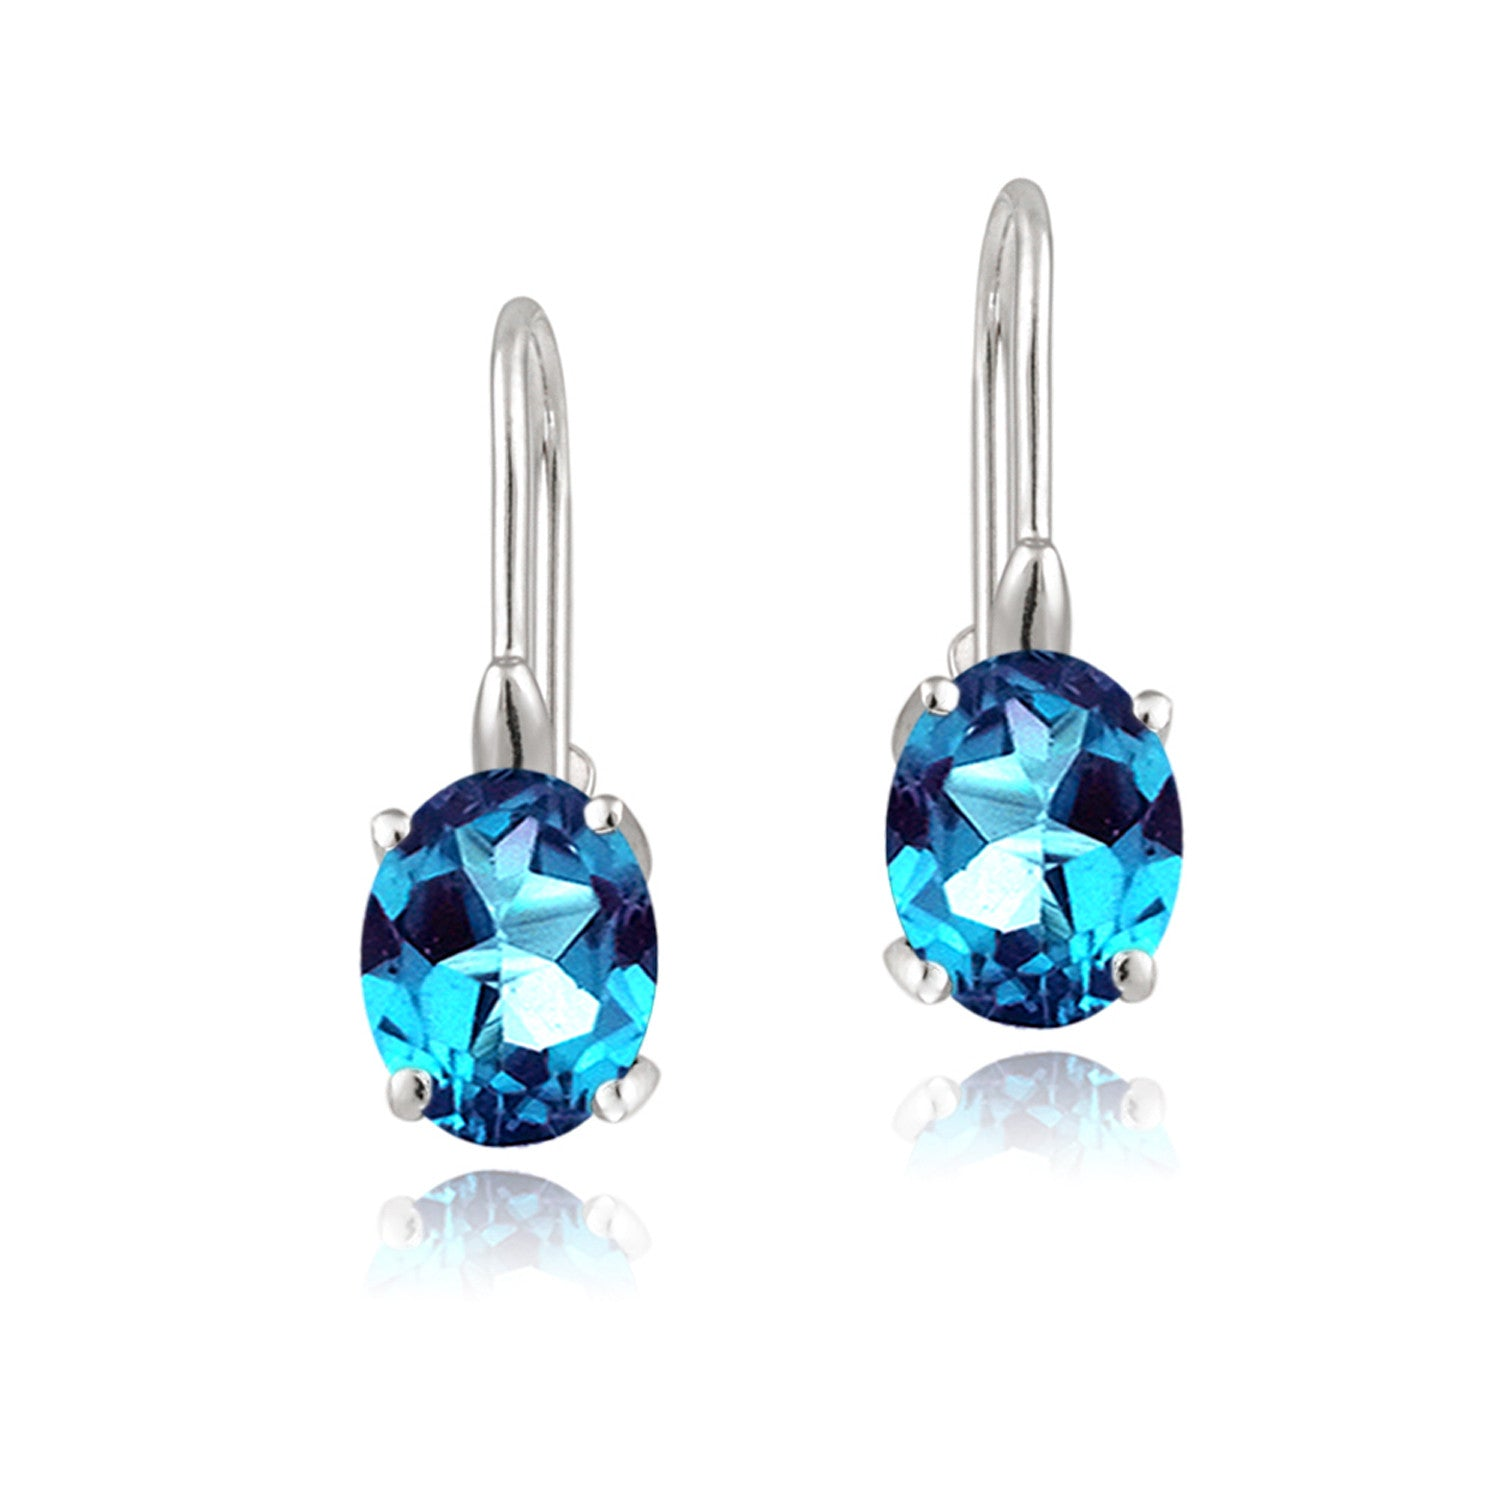 Sterling Silver Oval Cut Birthstone Leverback Dangle Earrings - March Aquamarine